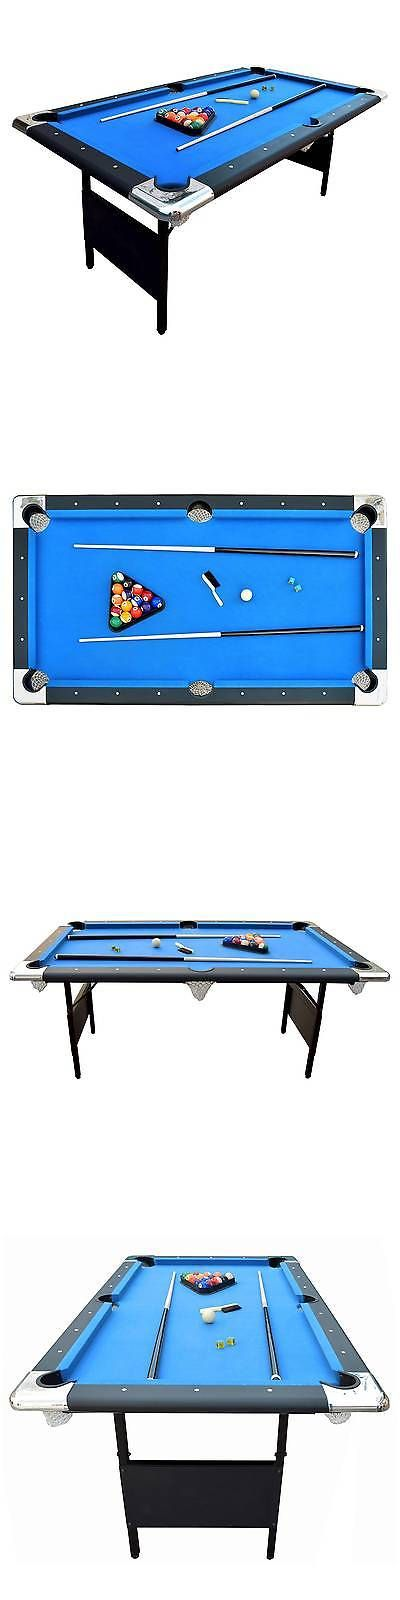 Other Indoor Games 36278: Fairmont 6-Ft Portable Pool Table -> BUY IT NOW ONLY: $504.99 on eBay!